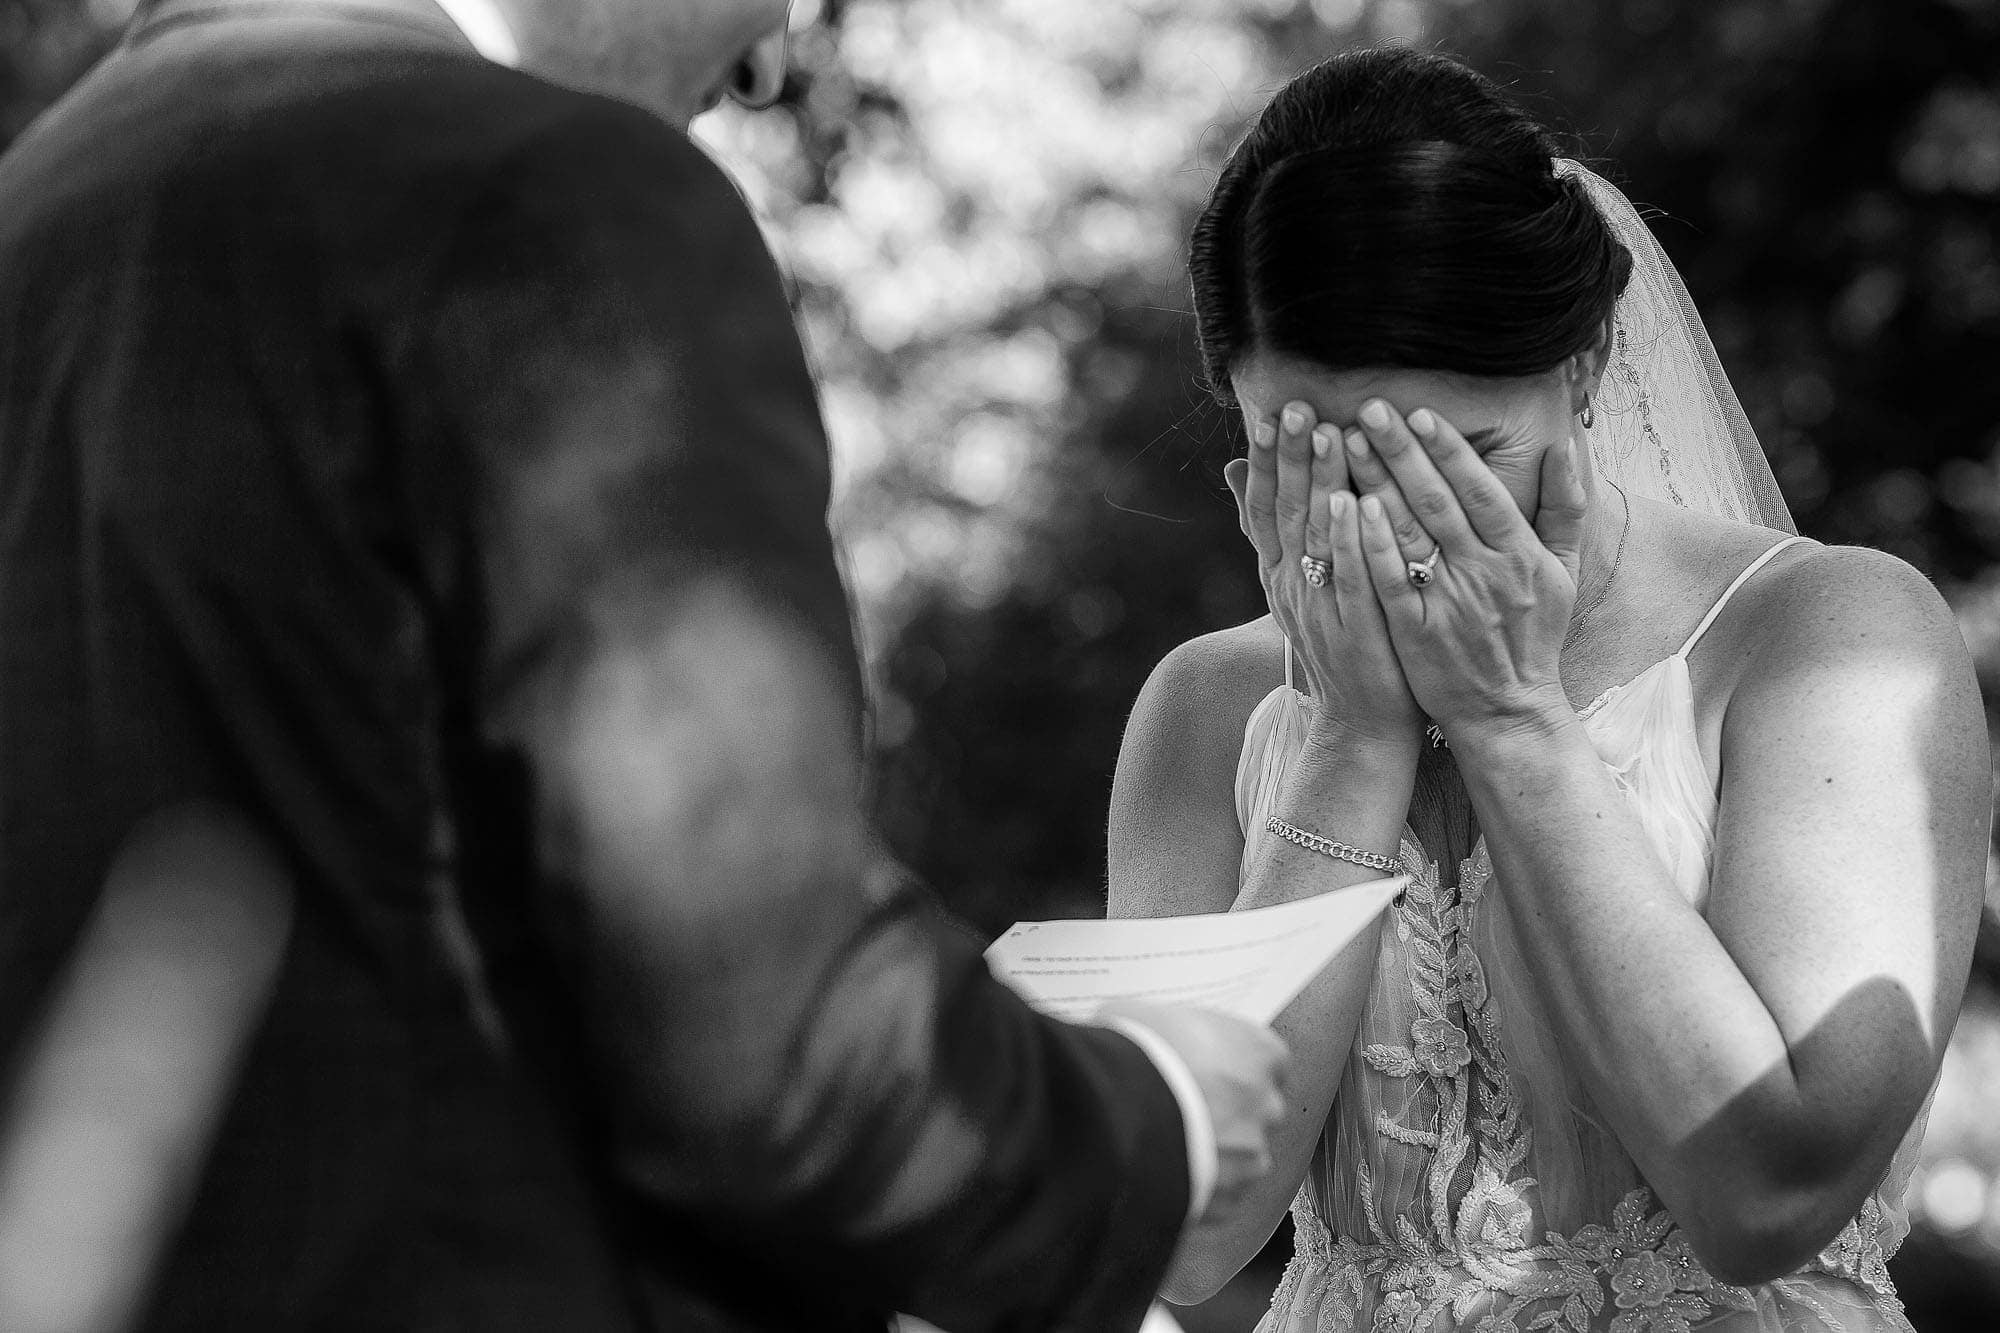 the bride weeps as her groom says his vows